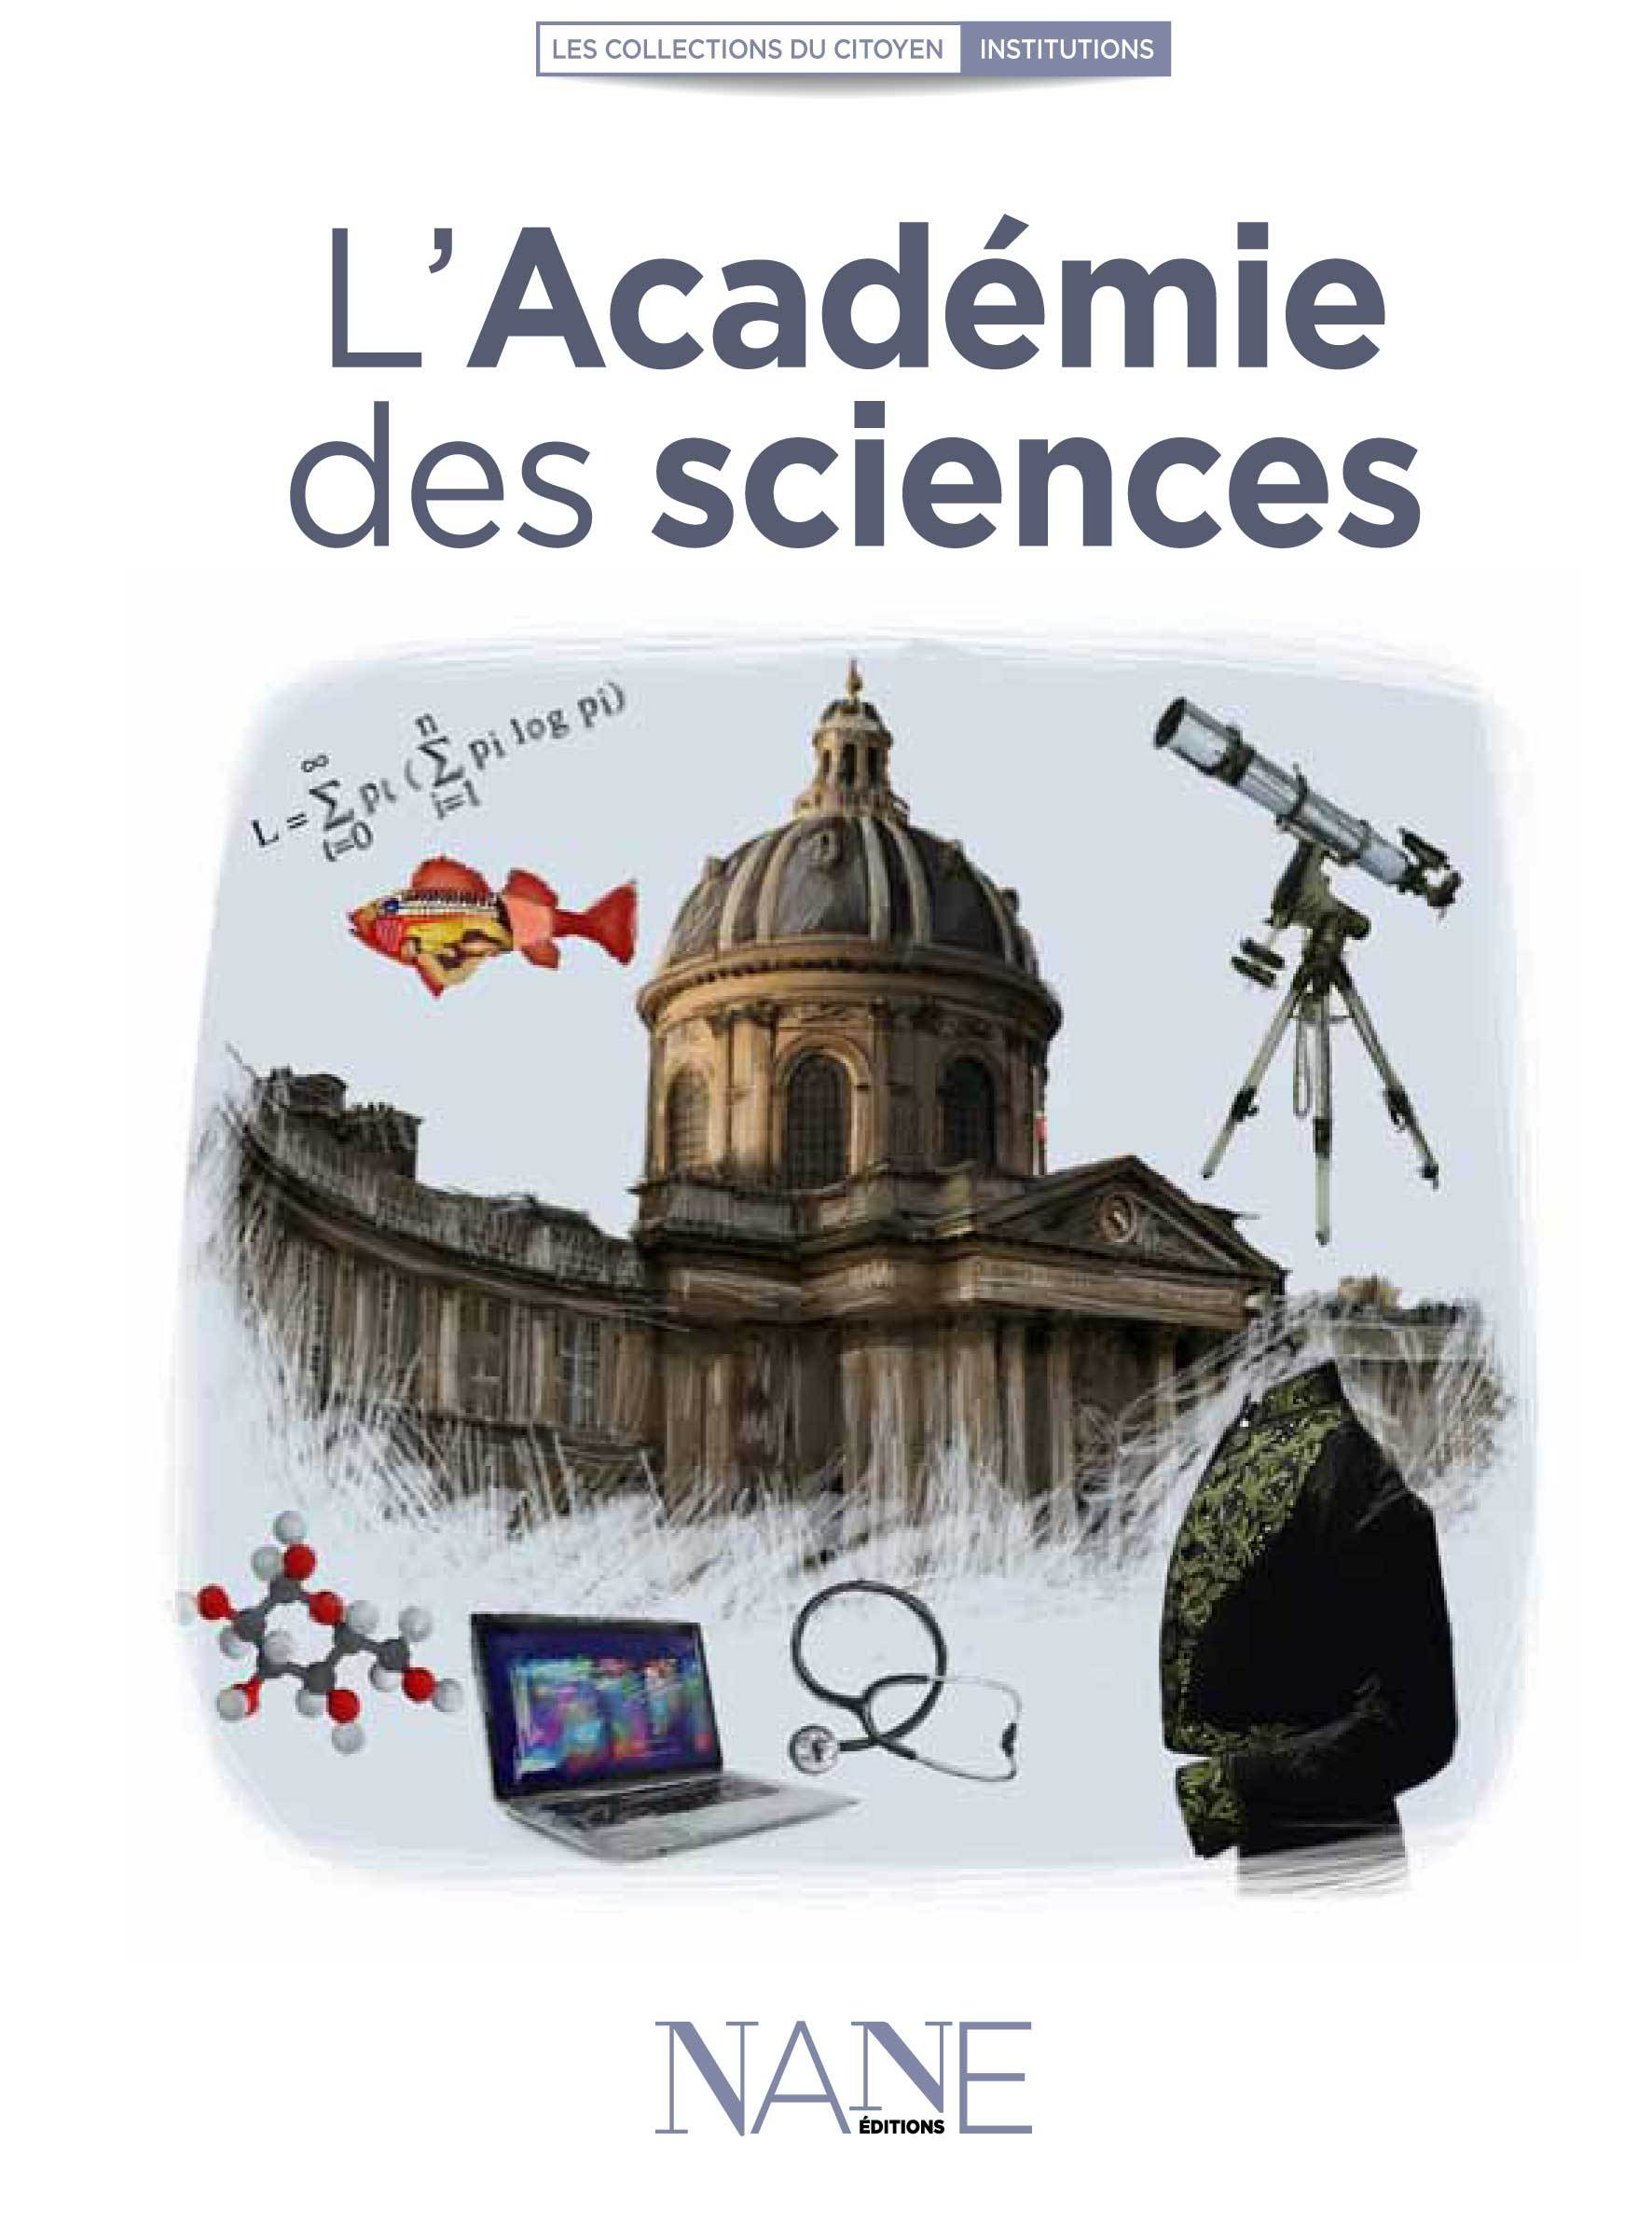 L'Académie des sciences